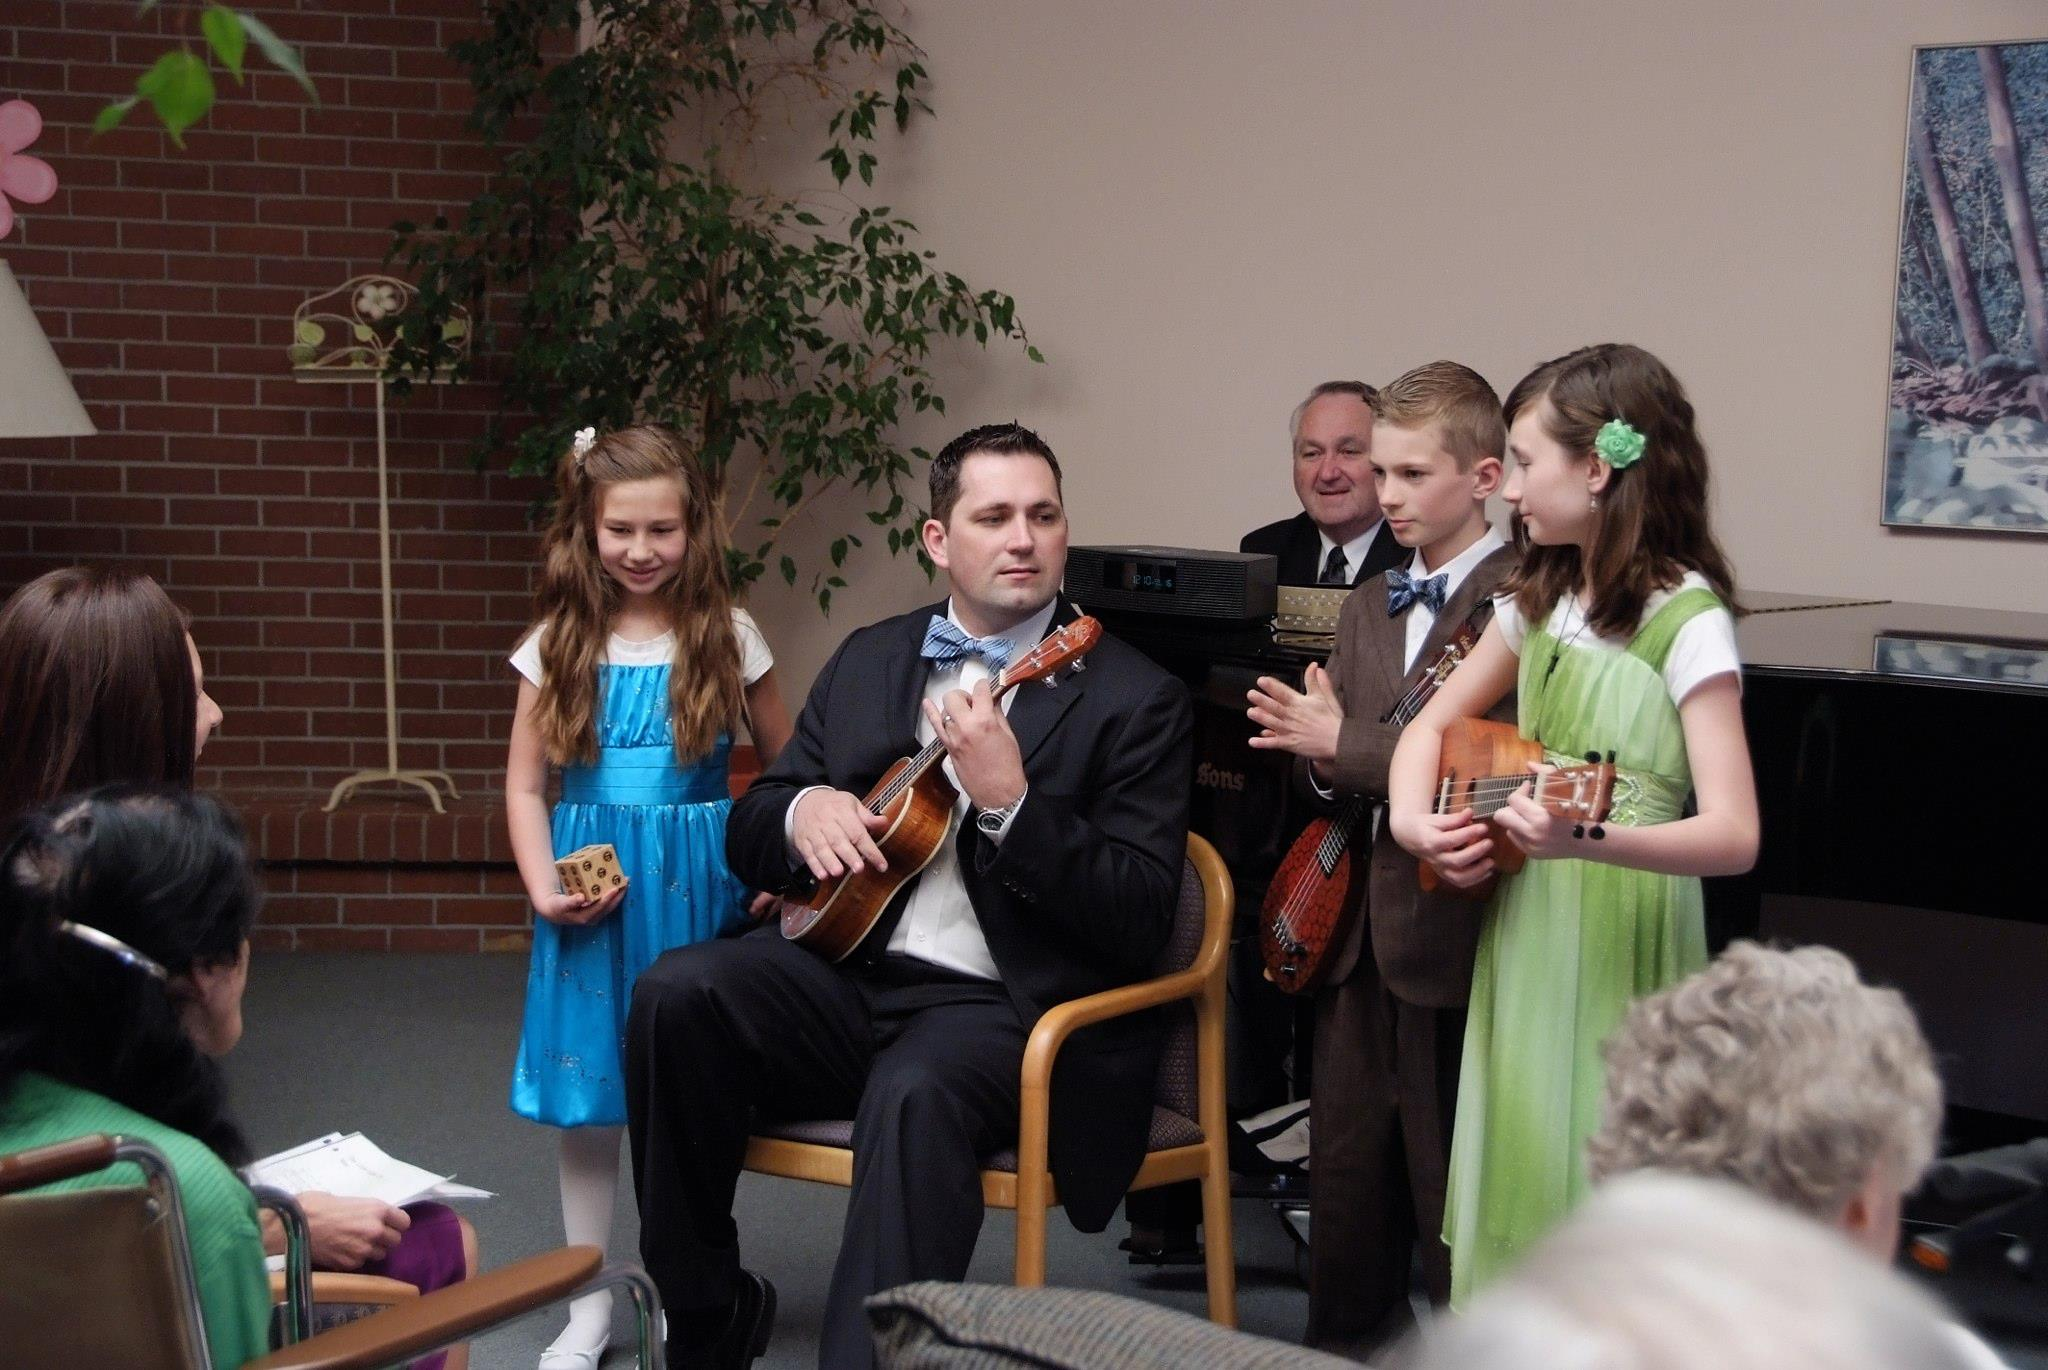 gavin_fish_family_play_ukulele_gramercy_court